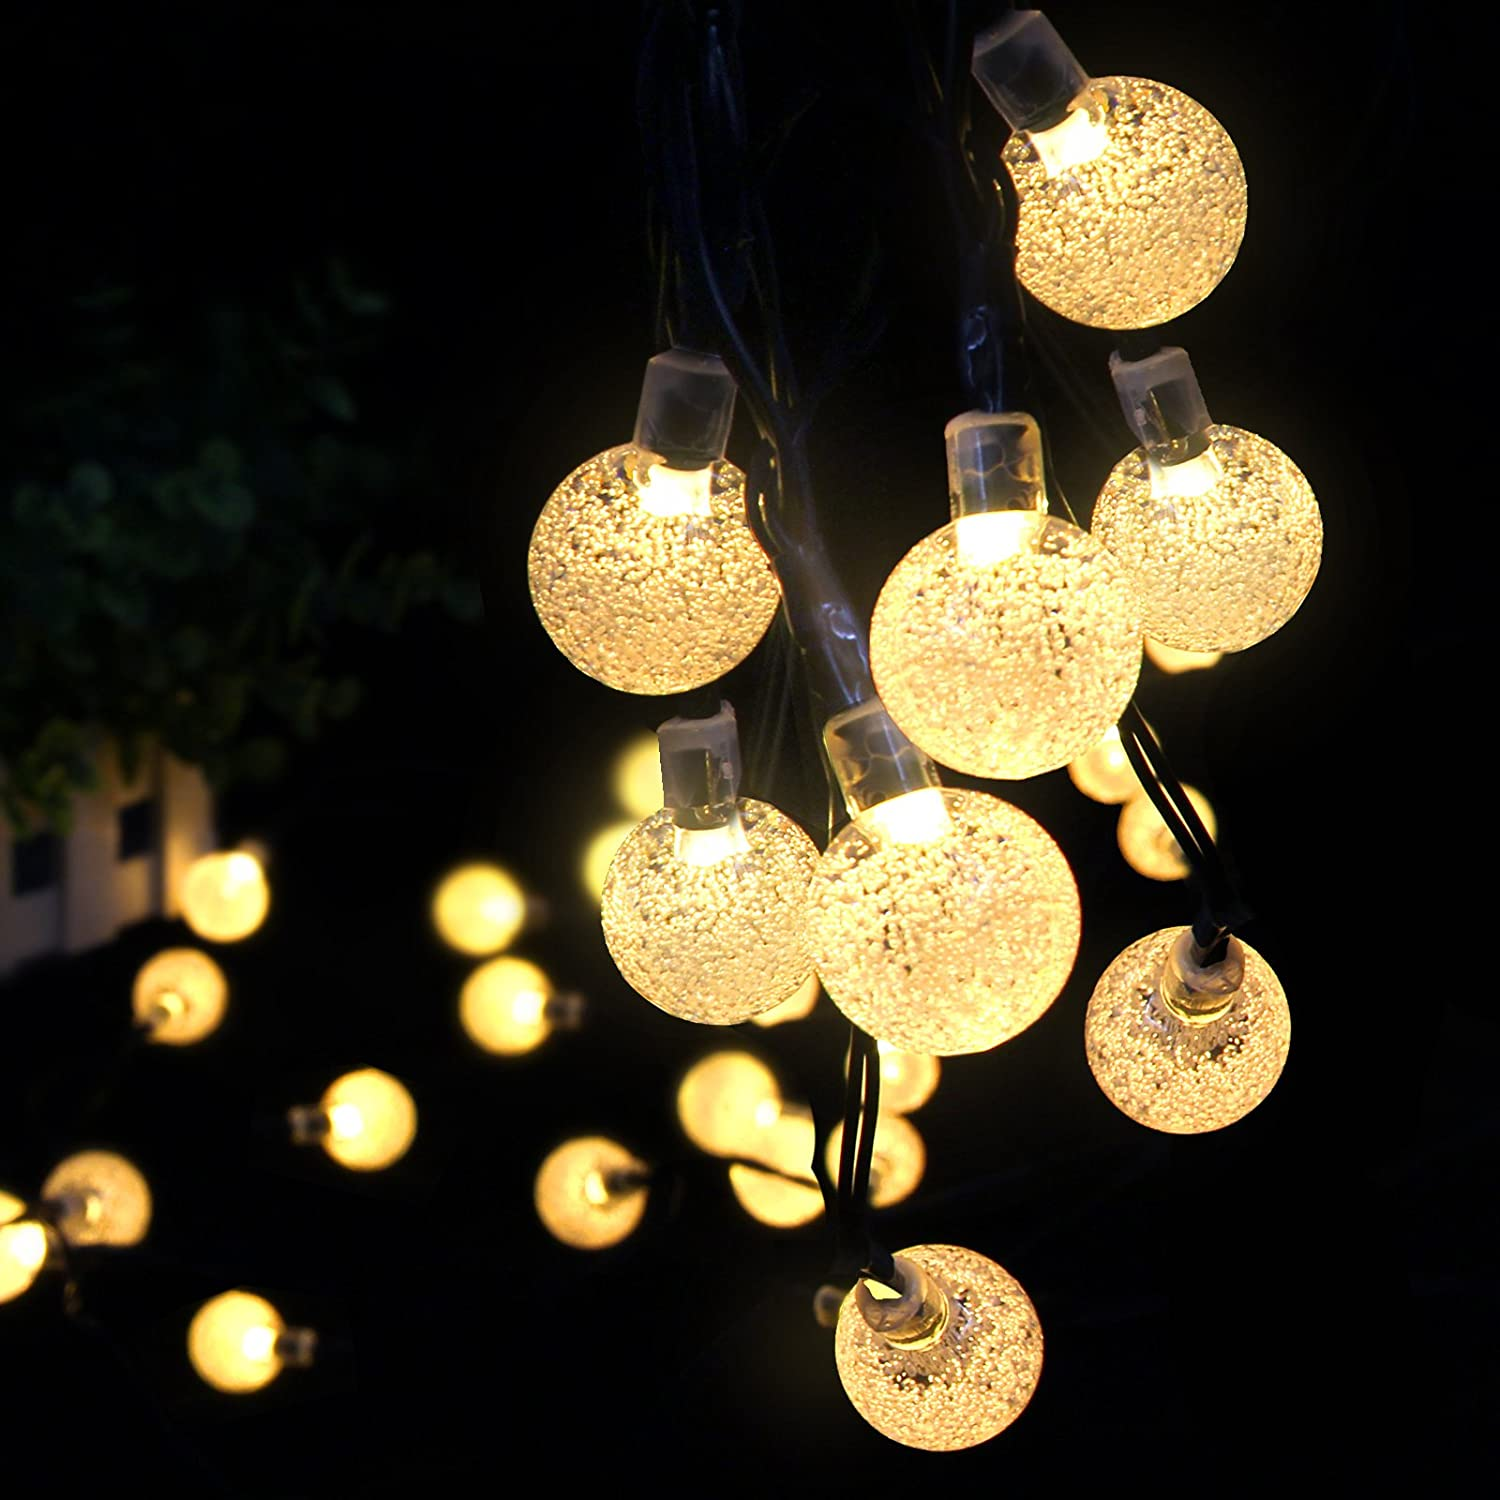 Solar outdoor string lights ascher 30 led fairy light warm white solar outdoor string lights ascher 30 led fairy light warm white crystal ball christmas globe lights for outdoor yard garden homegarden pathchrismas mozeypictures Gallery